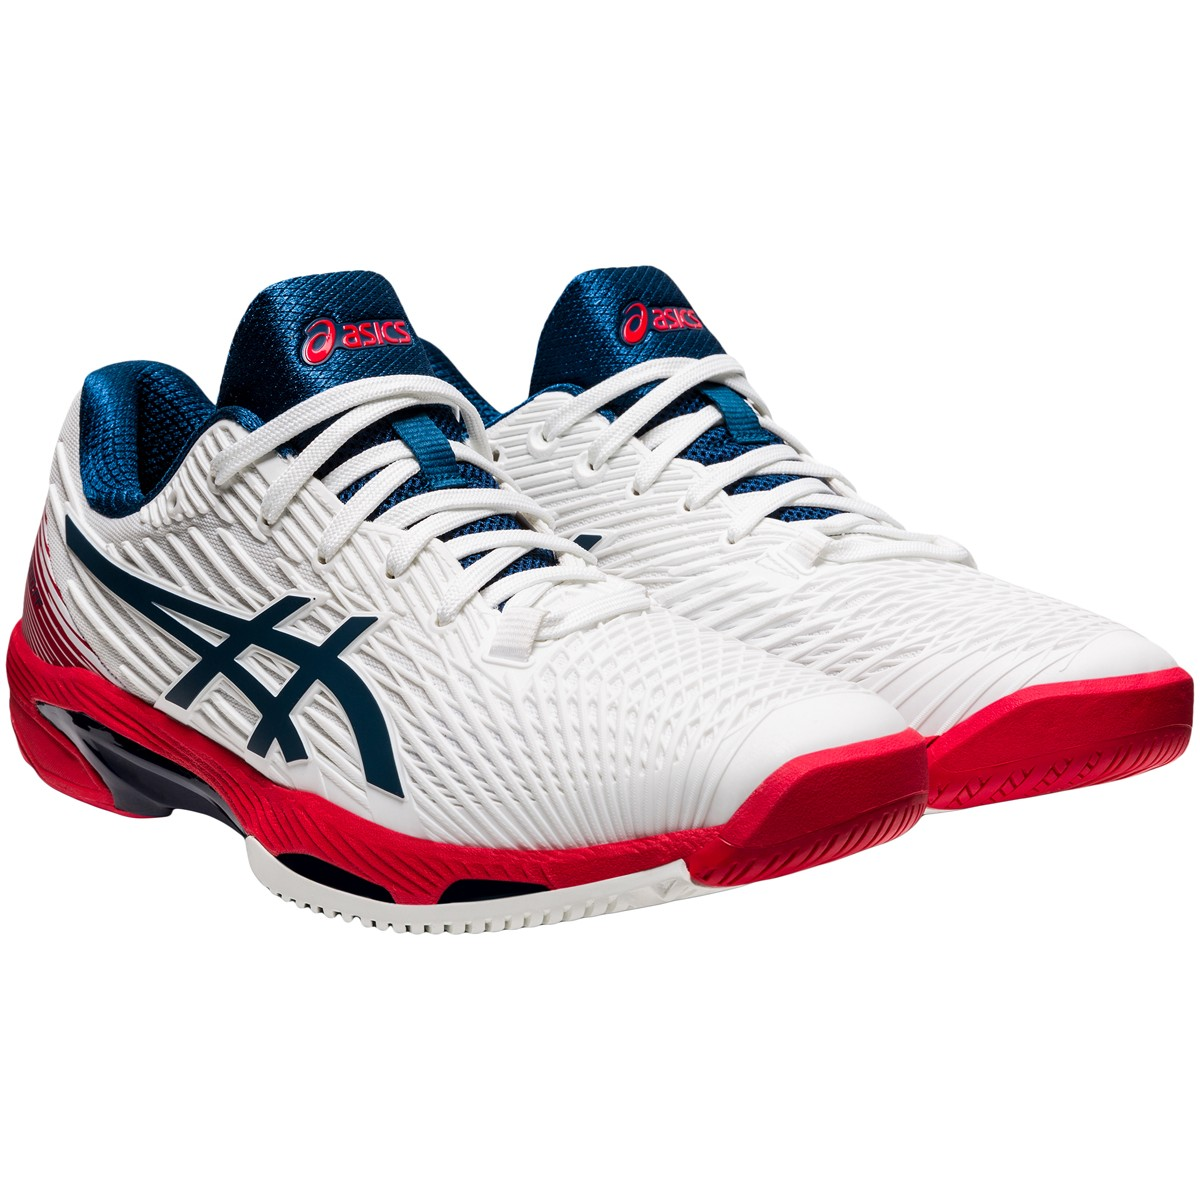 ASICS SOLUTION SPEED FF 2 ALL COURT SHOES - ASICS - Men's - Shoes ...